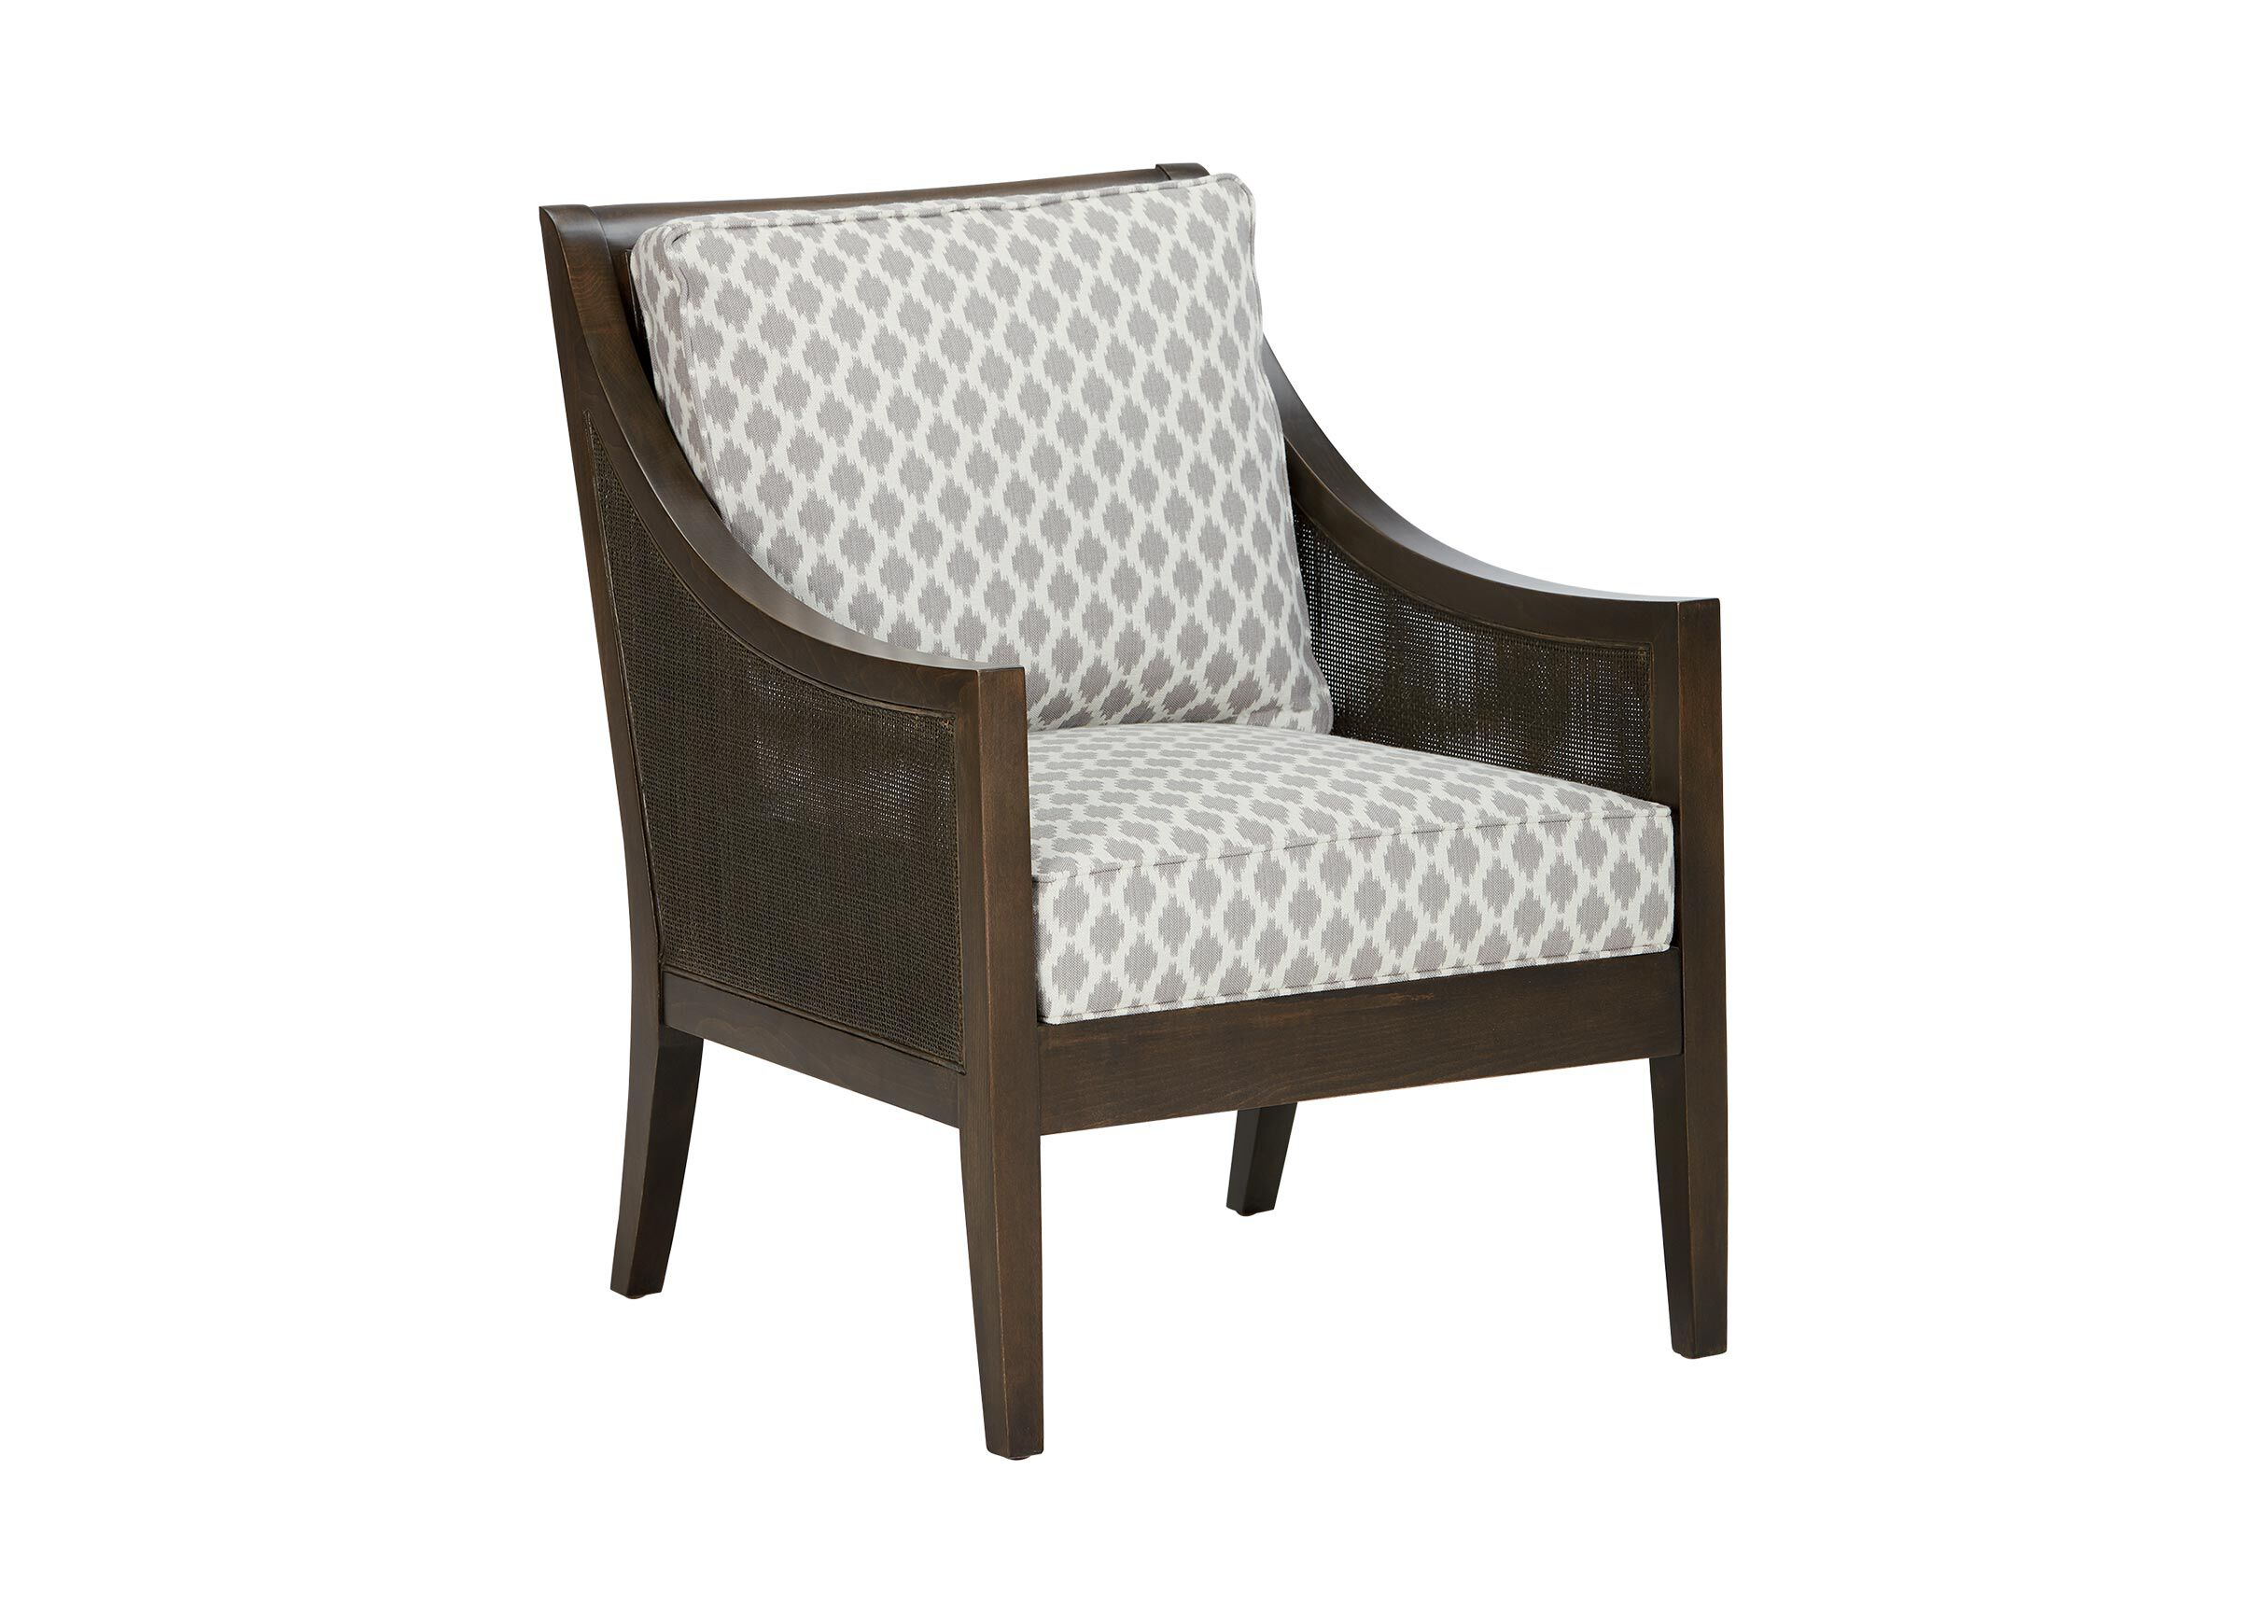 Woven Chair Kelby Woven Chair Chairs And Chaises Ethan Allen